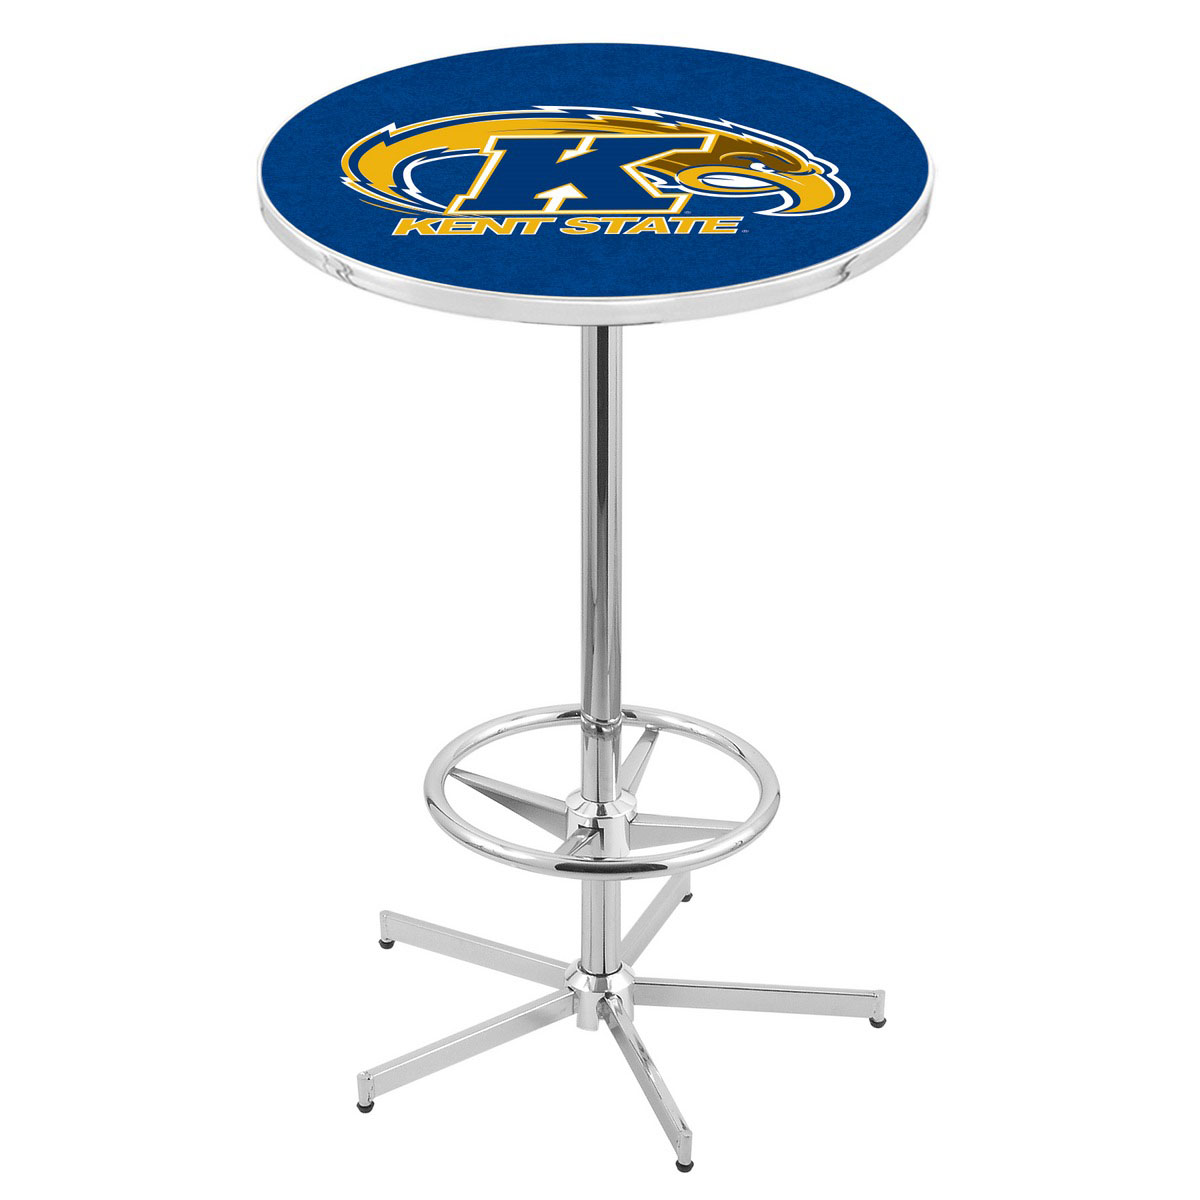 Pretty Chrome Kent State Pub Table Product Photo